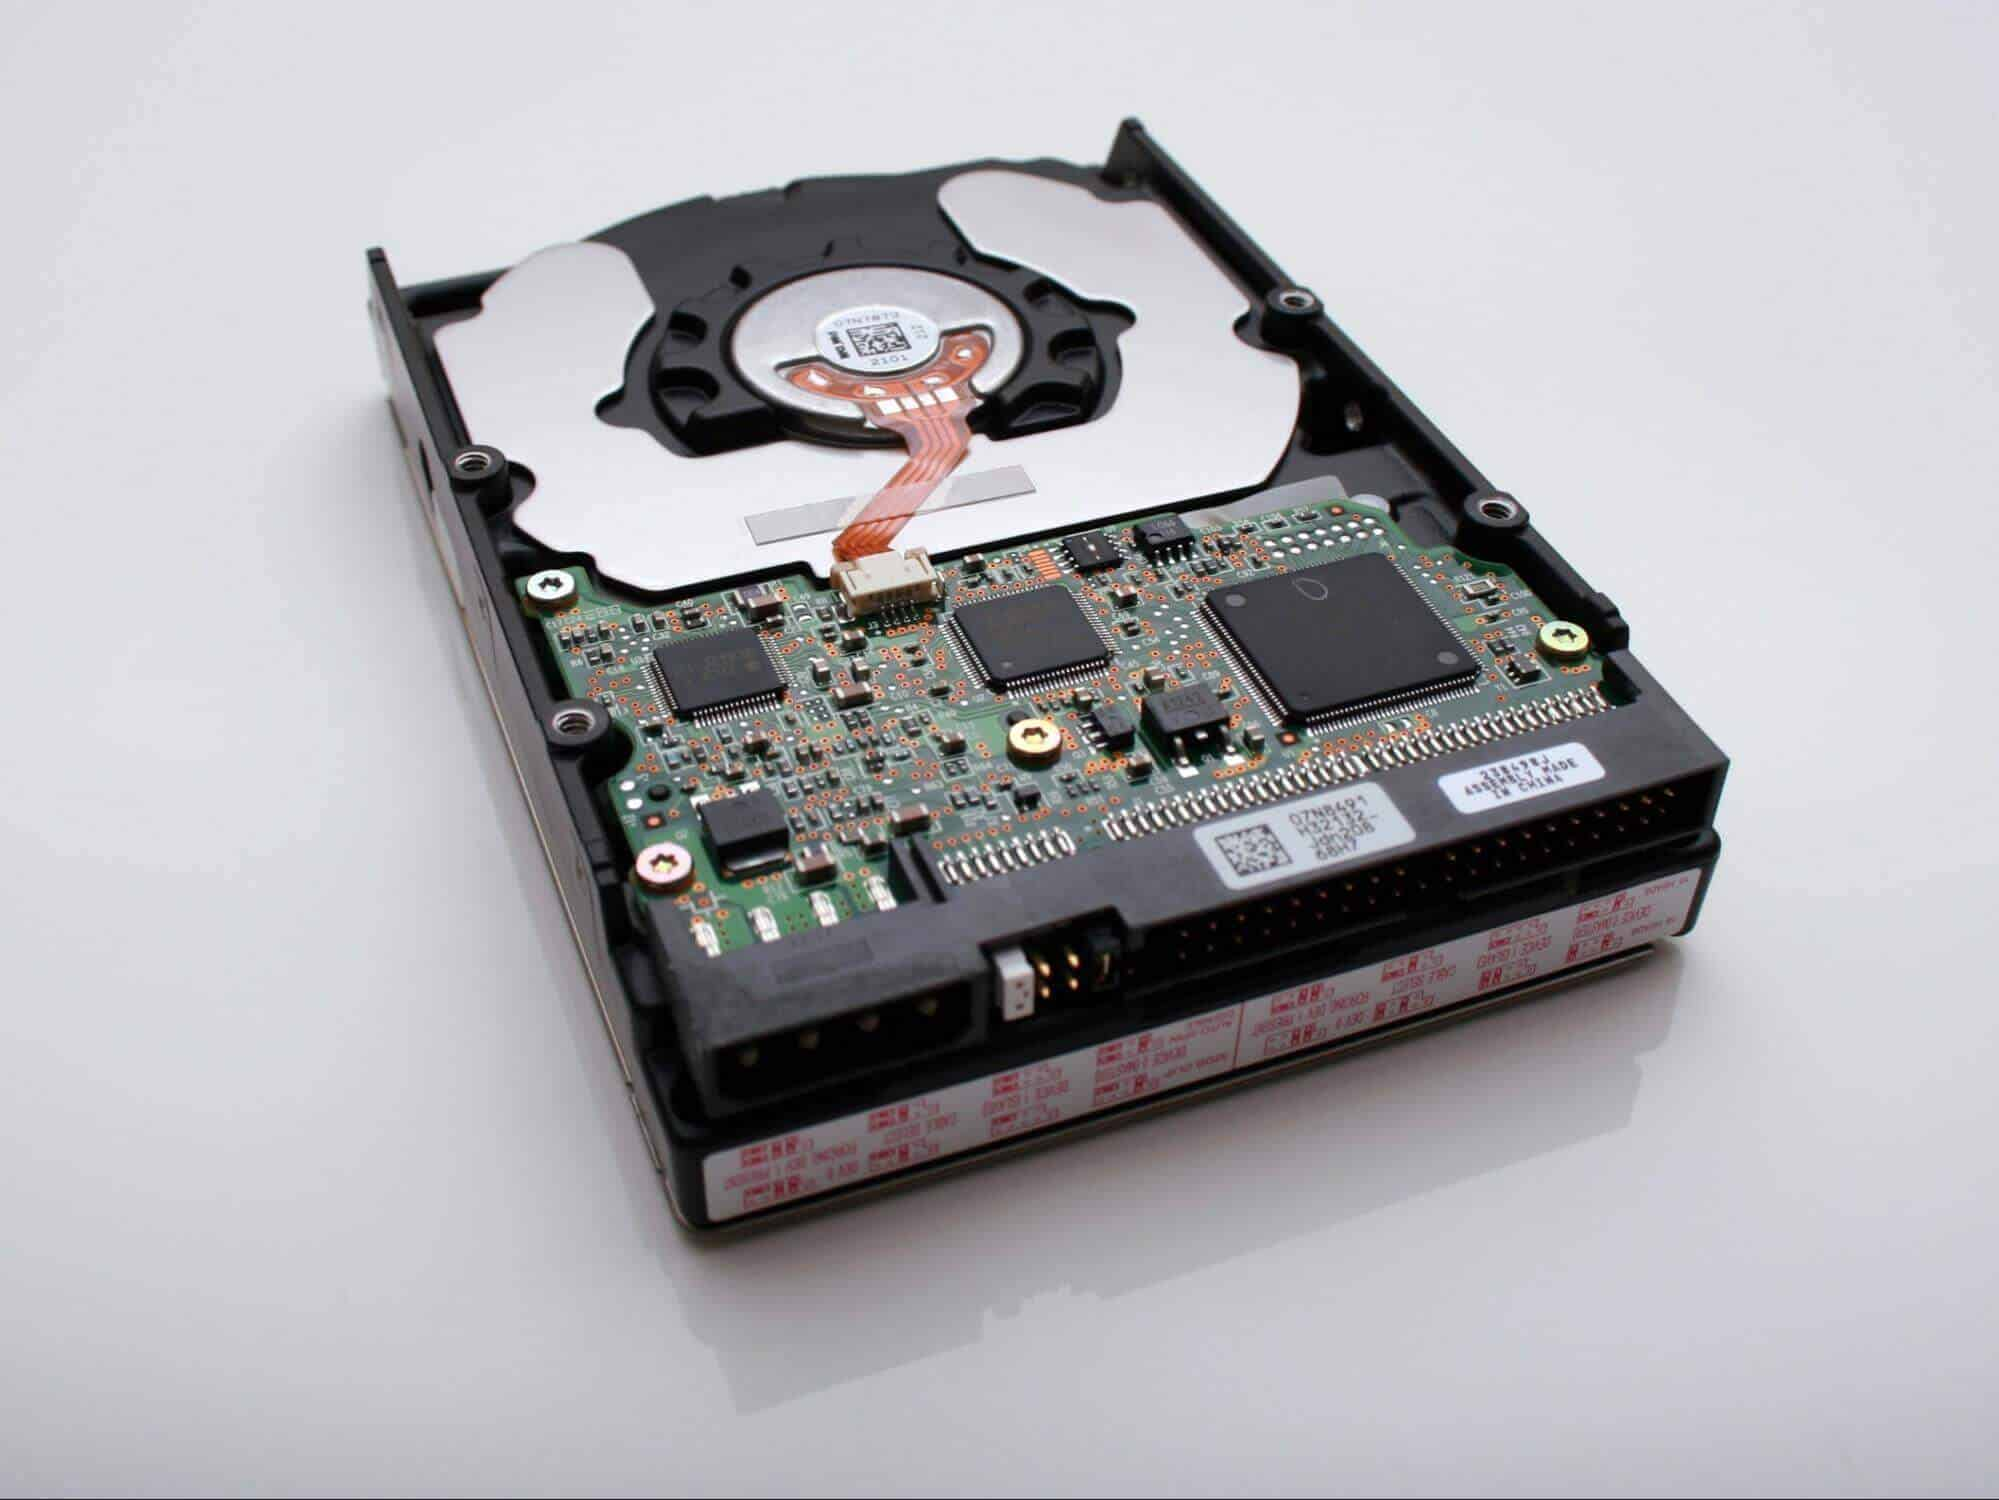 A picture of a hard drive disk